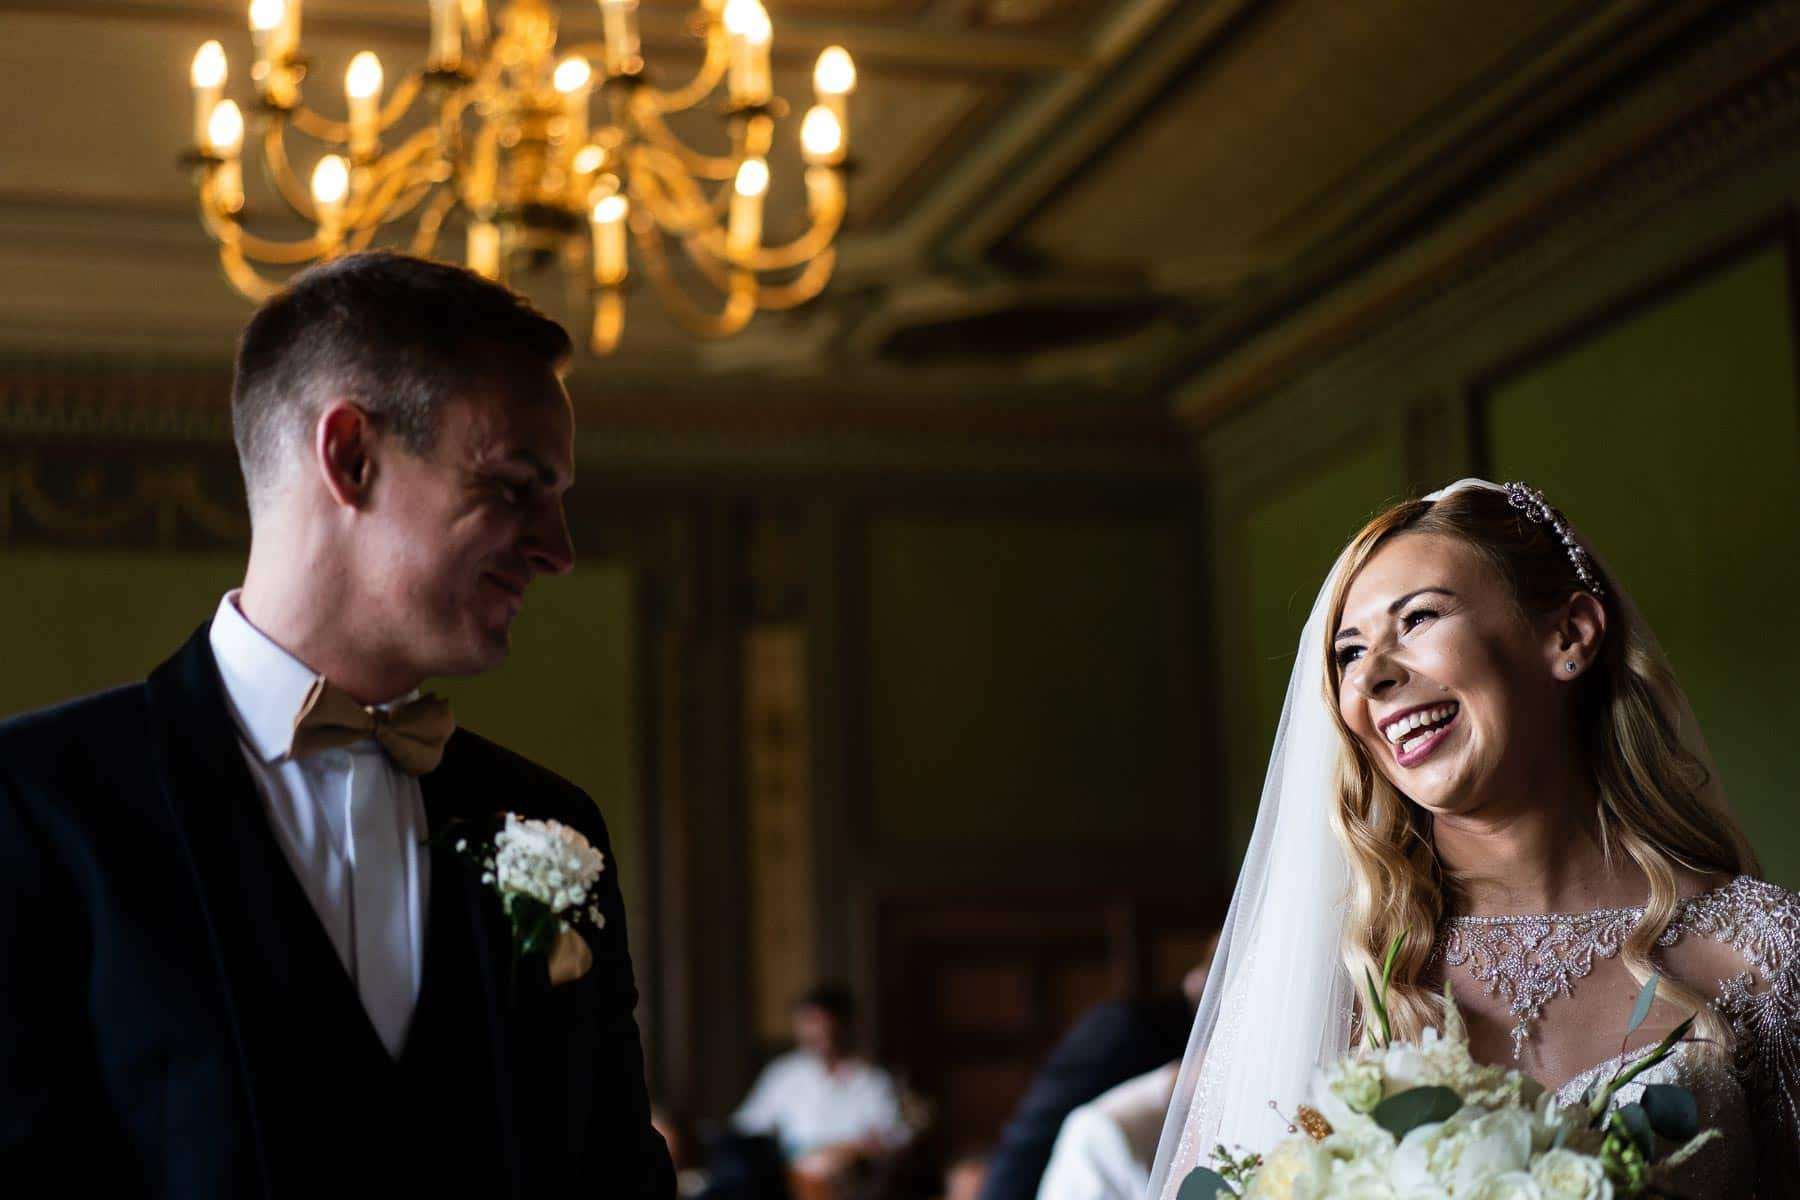 The beautiful Bouverie Room at Delapre abbey with stunning weddings